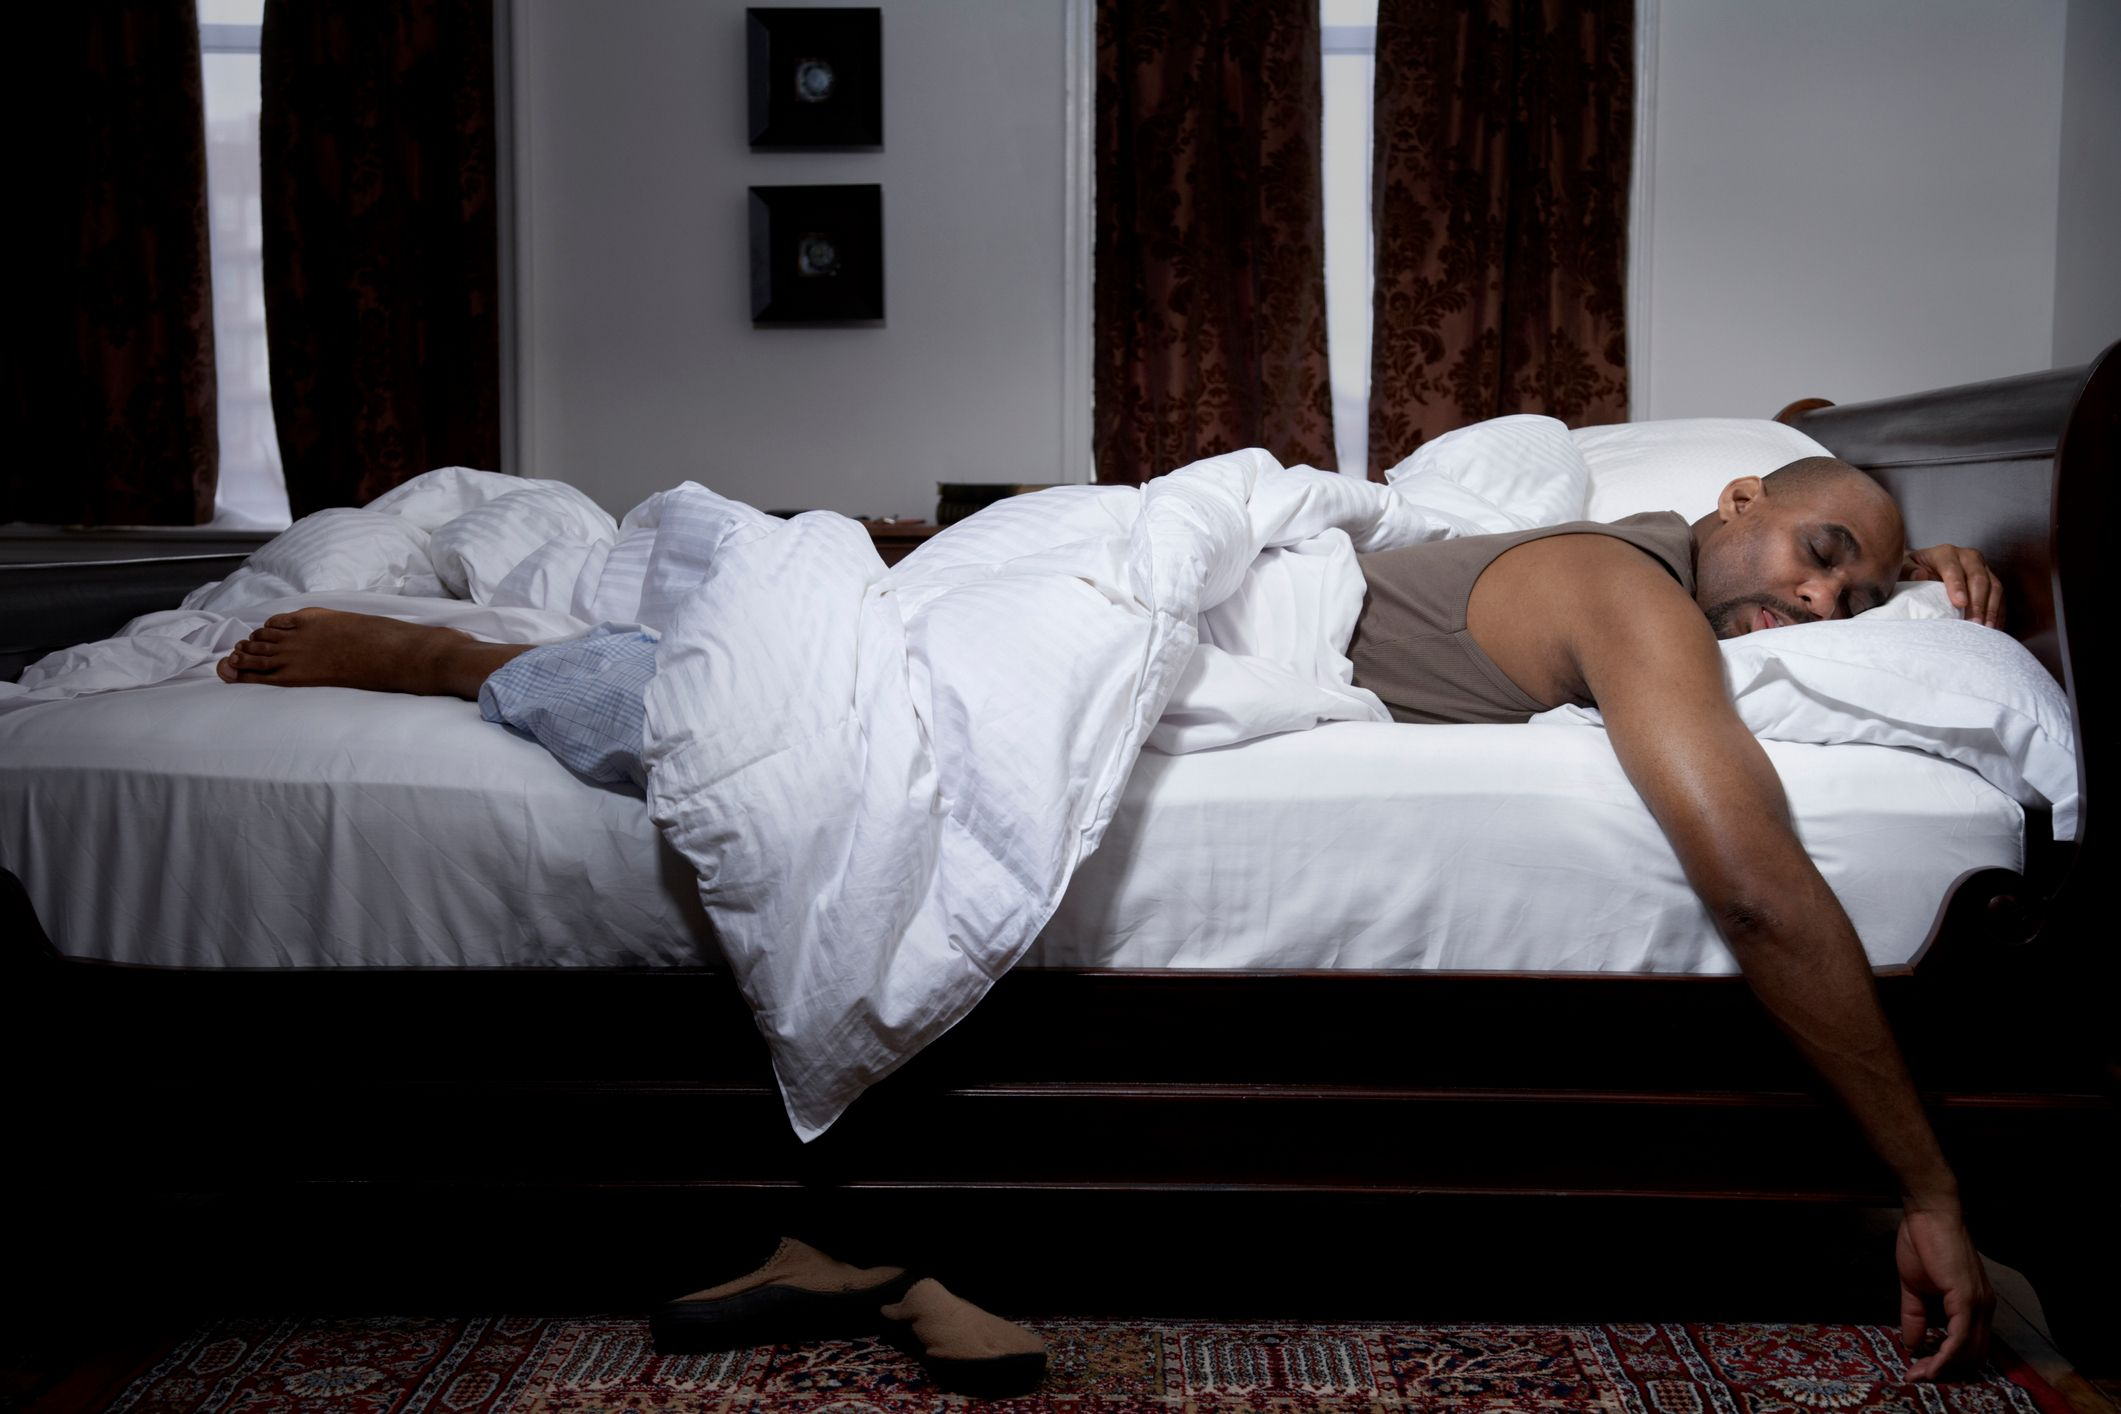 A man sleeping on the bed.   Source: Getty Images